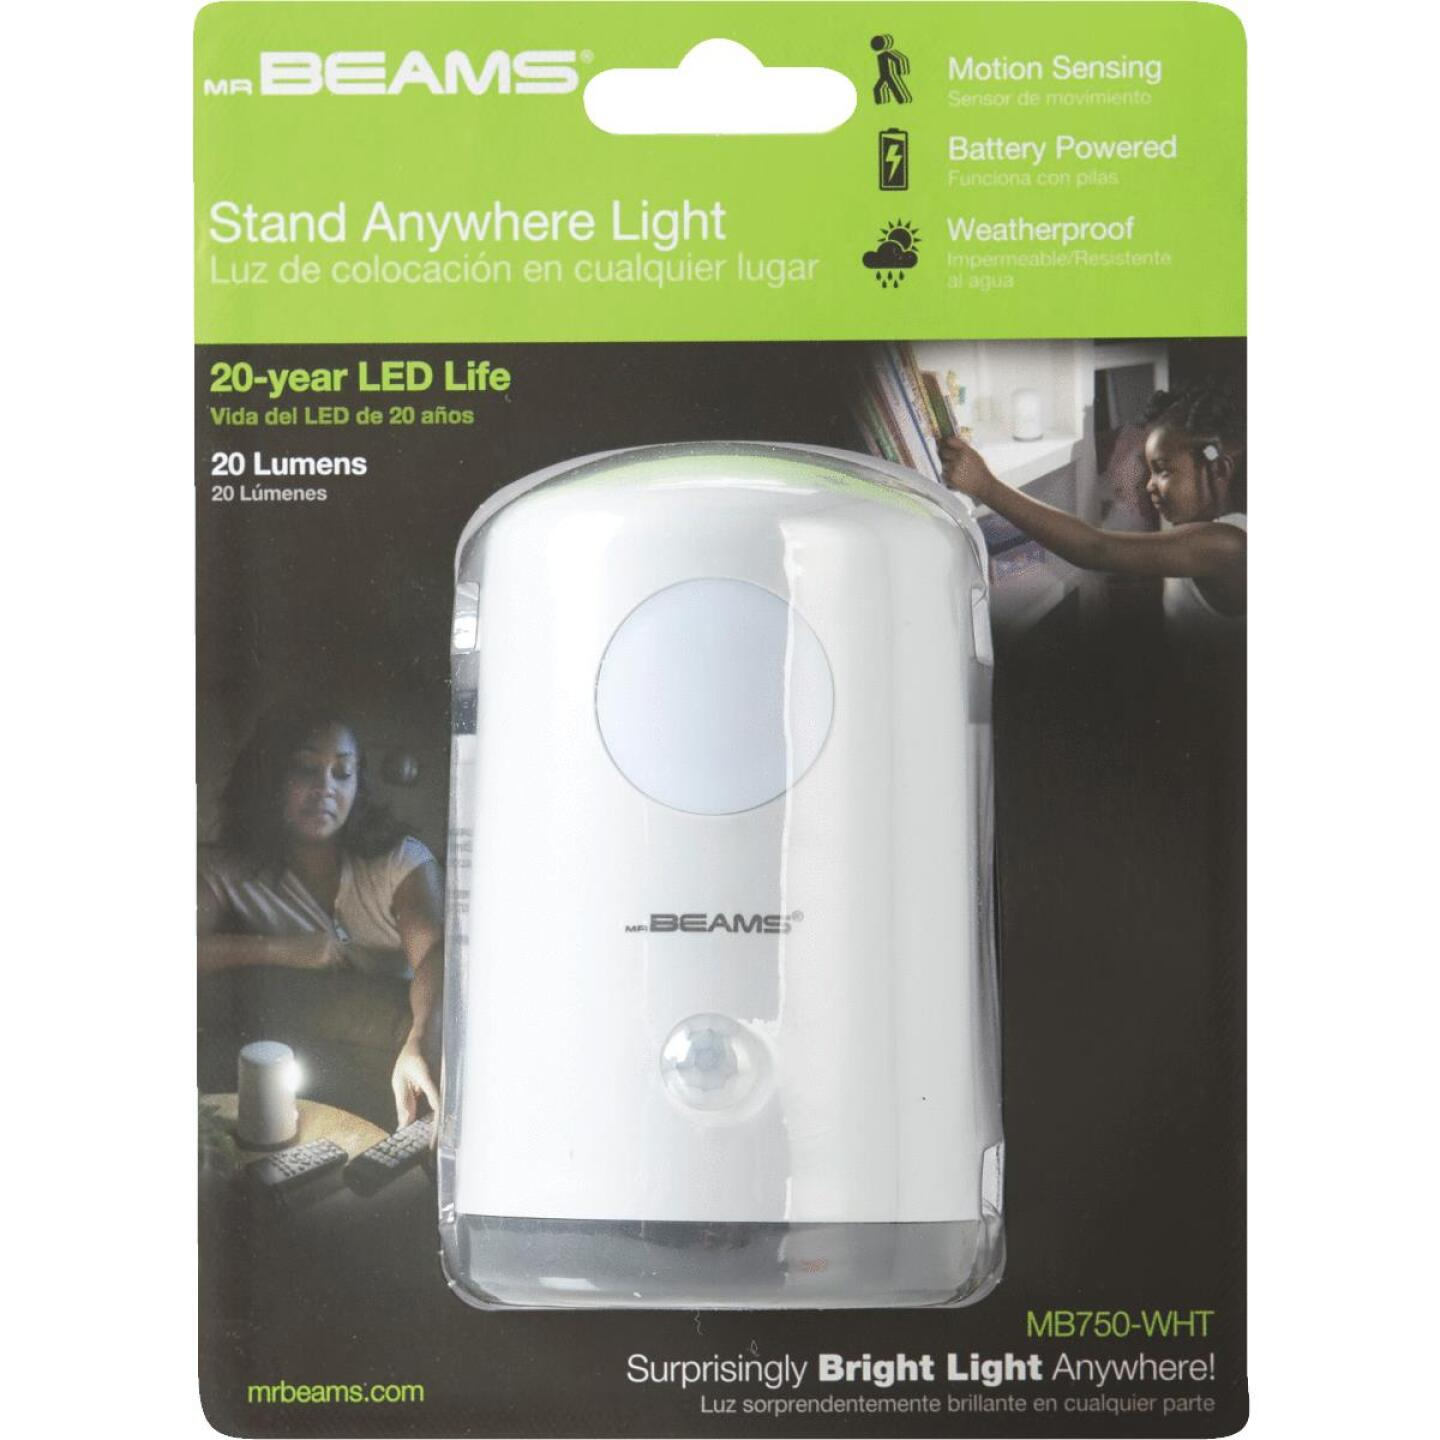 Mr. Beams White Hands Free Stand Anywhere Outdoor Battery Operated LED Light Image 2